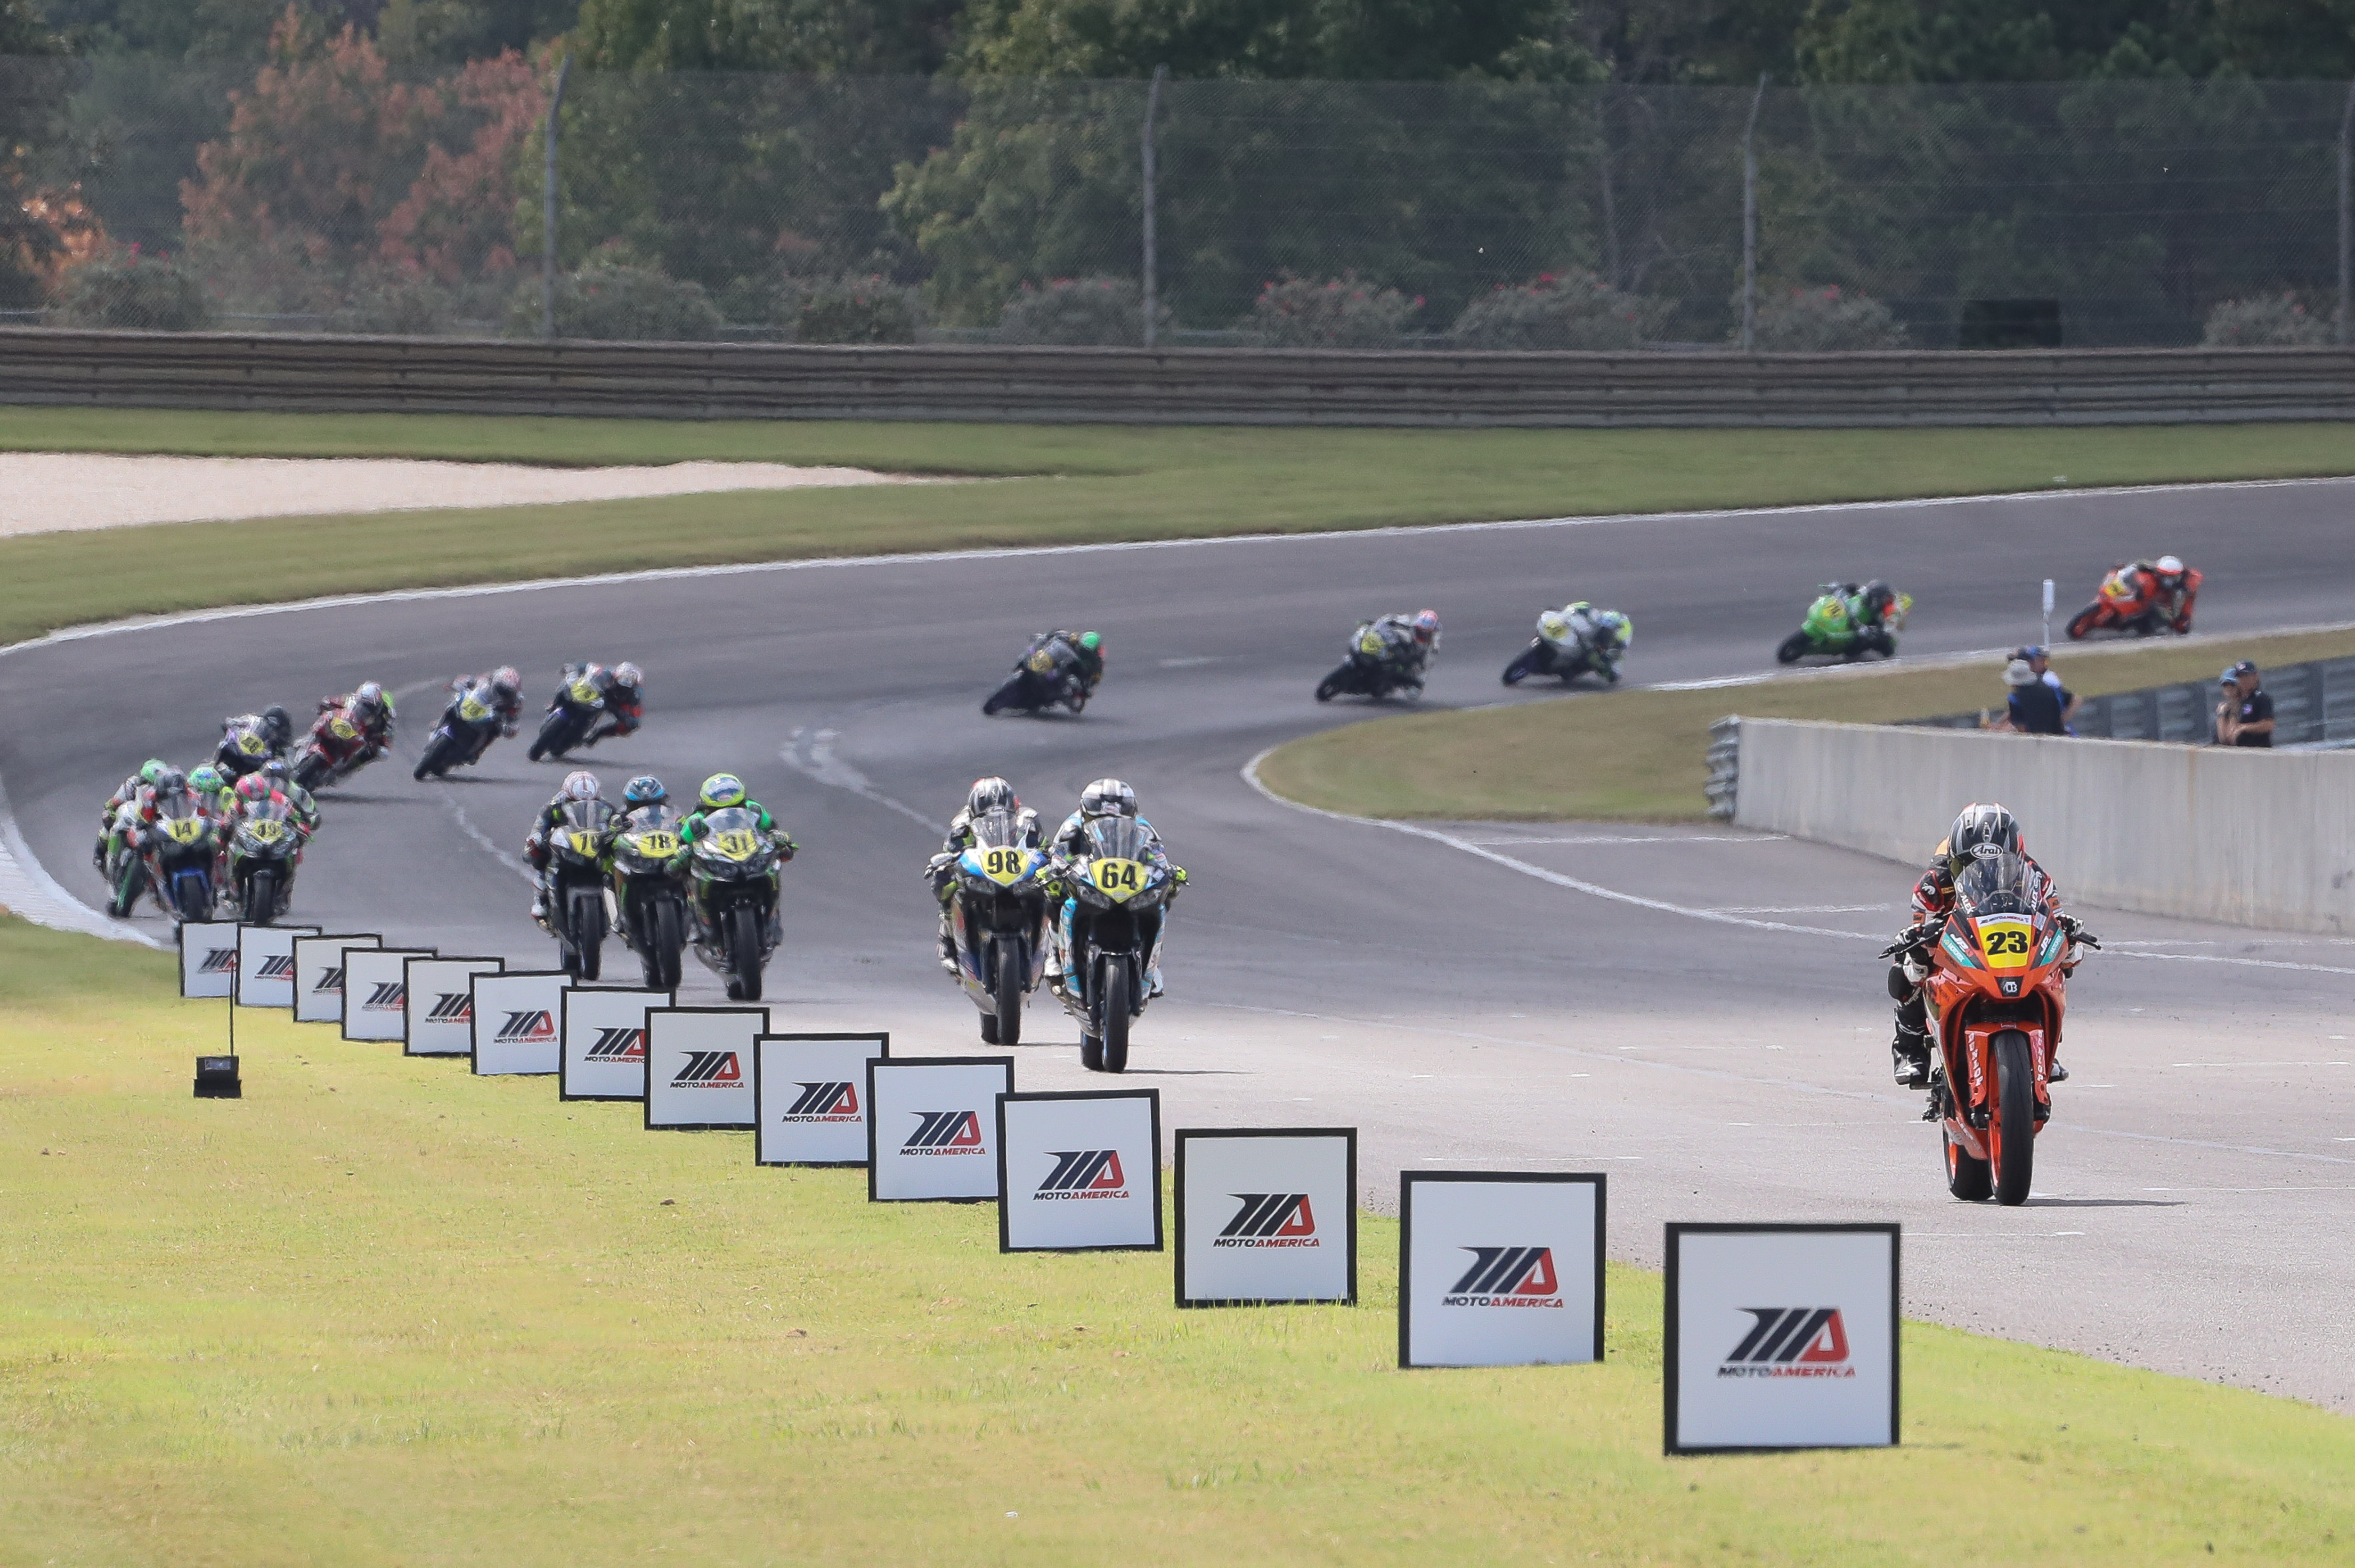 KTM's Alex Dumas (23) won the Liqui Moly Junior Cup race on Saturday at Barber